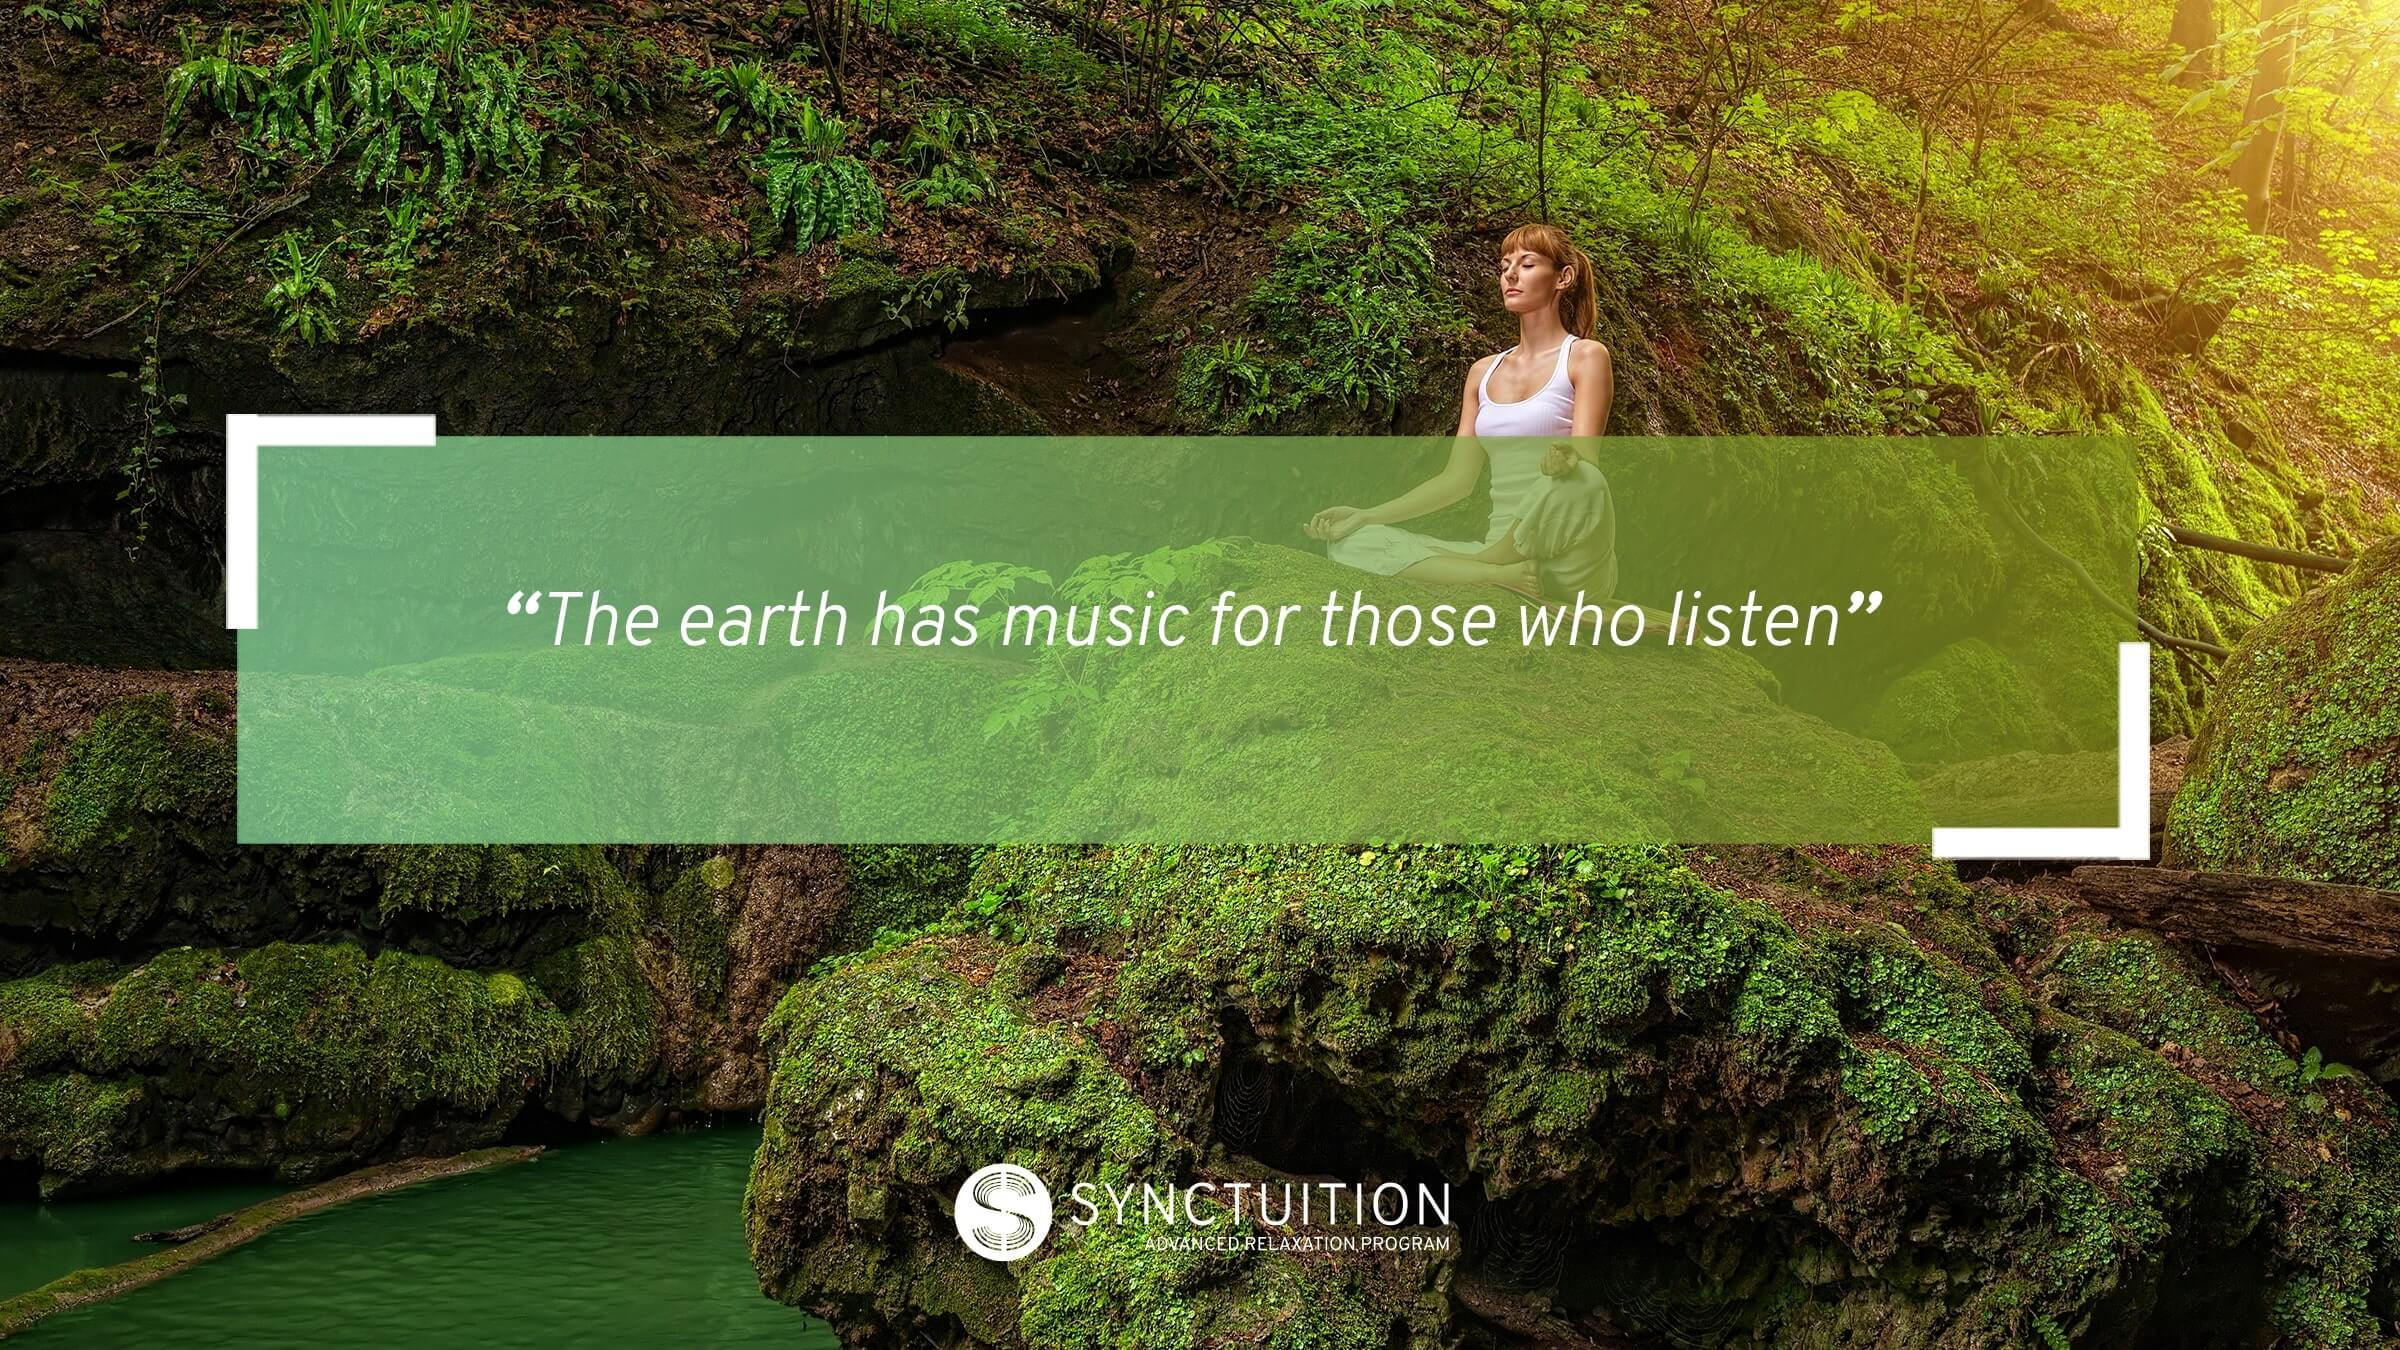 Synctuition's sound engineers recorded the most relaxing and beautiful nature sounds all over the world.